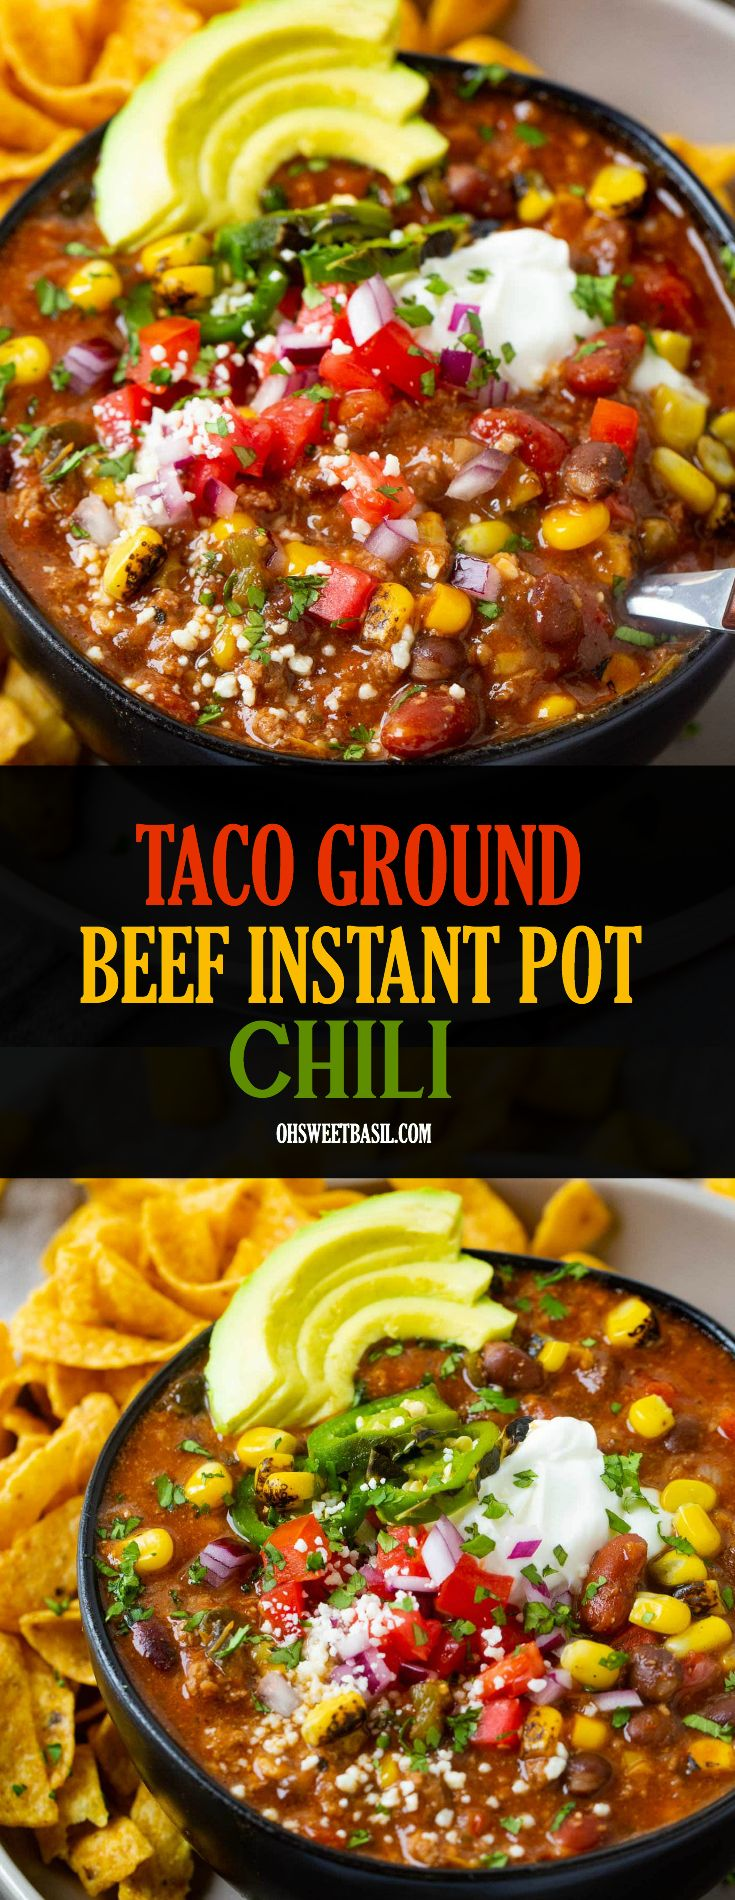 Taco Ground Beef Instant Pot Chili Video Oh Sweet Basil Recipe Ground Beef Healthy Instant Pot Recipes Stuffed Peppers